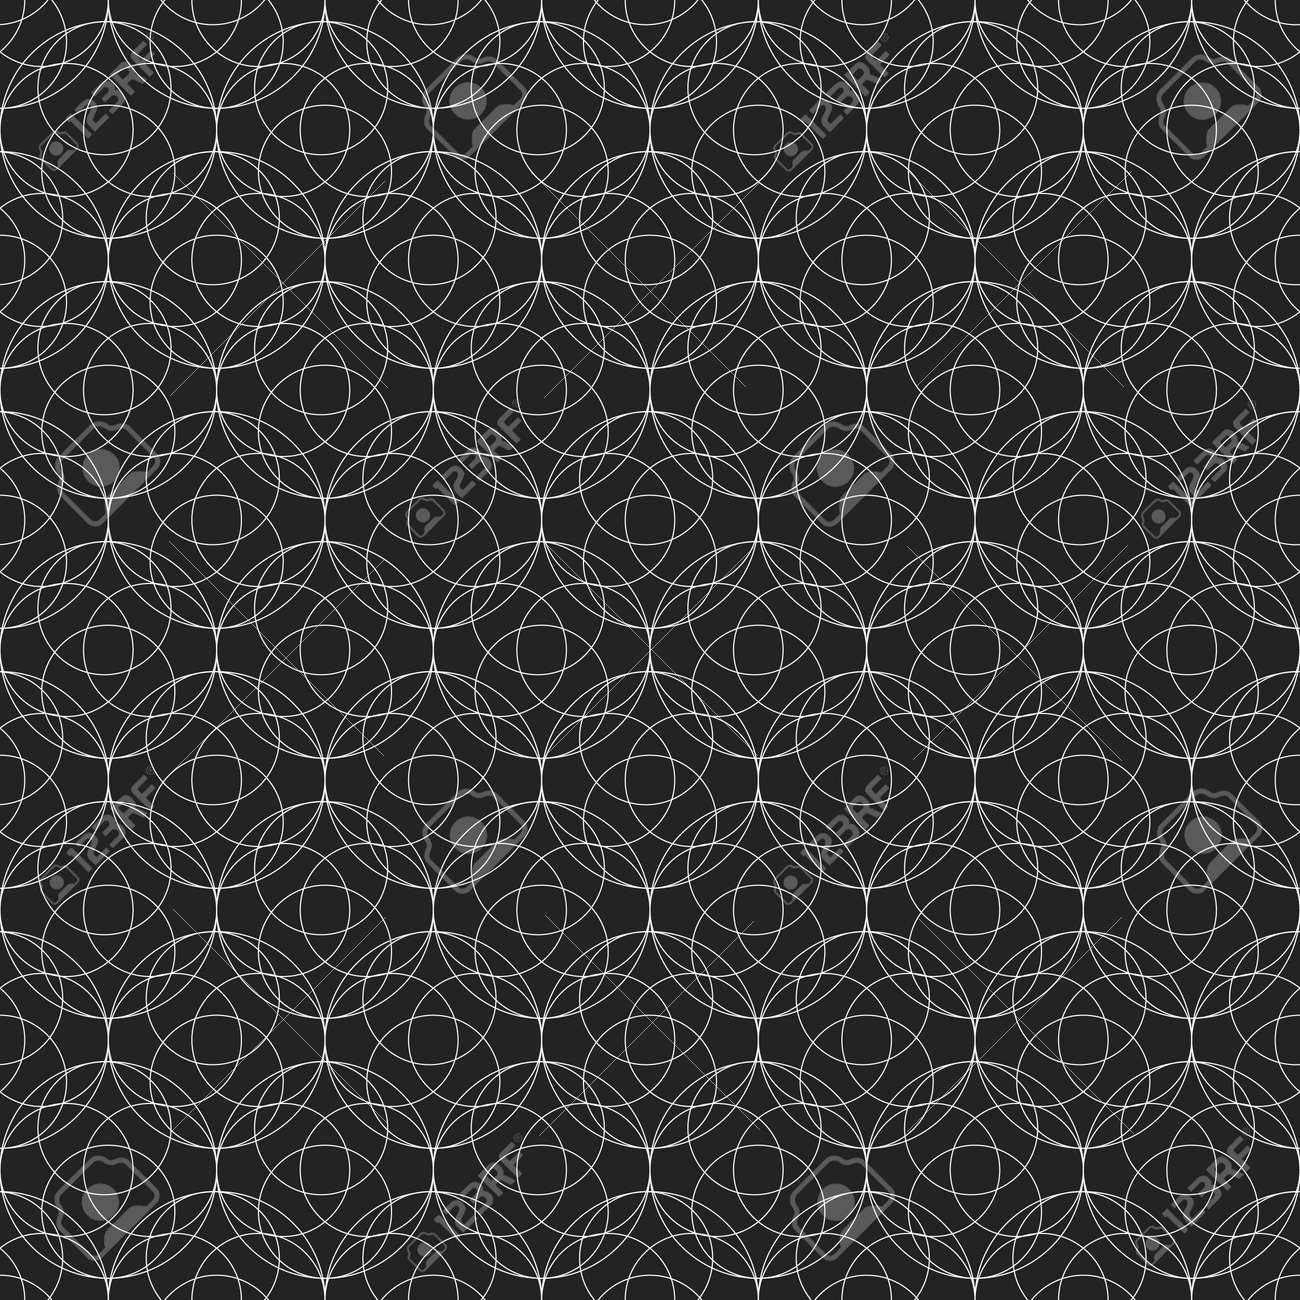 Lace seamless pattern with thin lines in shape of circles - 167305081